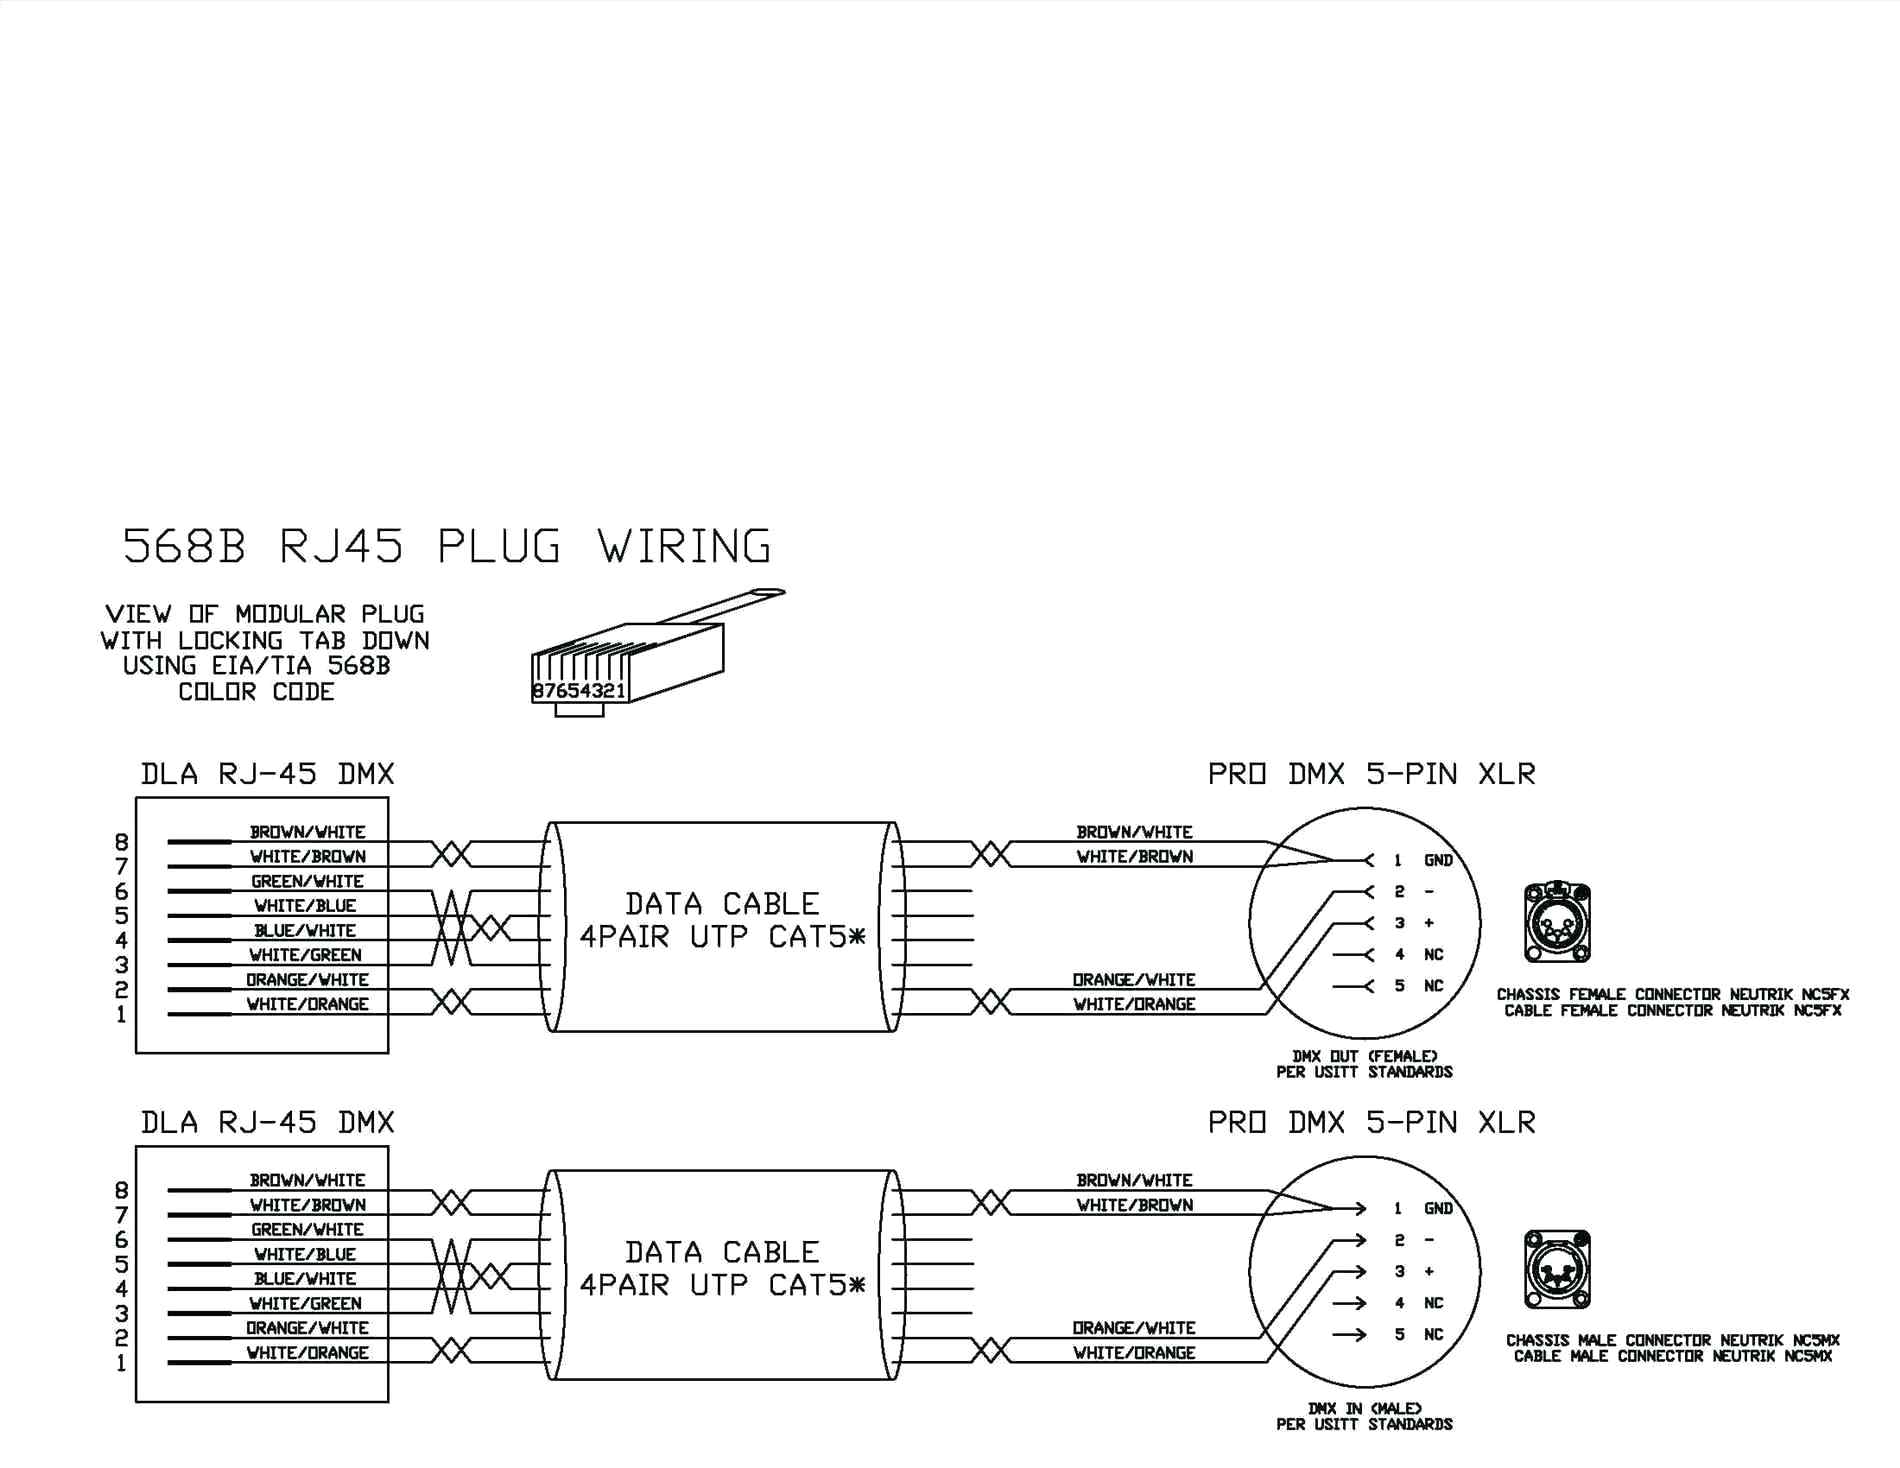 [WLLP_2054]   Kvm Ps2 To Usb Wiring Diagram - 2007 Fltr Harley Wiring Diagram for Wiring  Diagram Schematics | Kvm Ps2 To Usb Wiring Diagram |  | Wiring Diagram Schematics